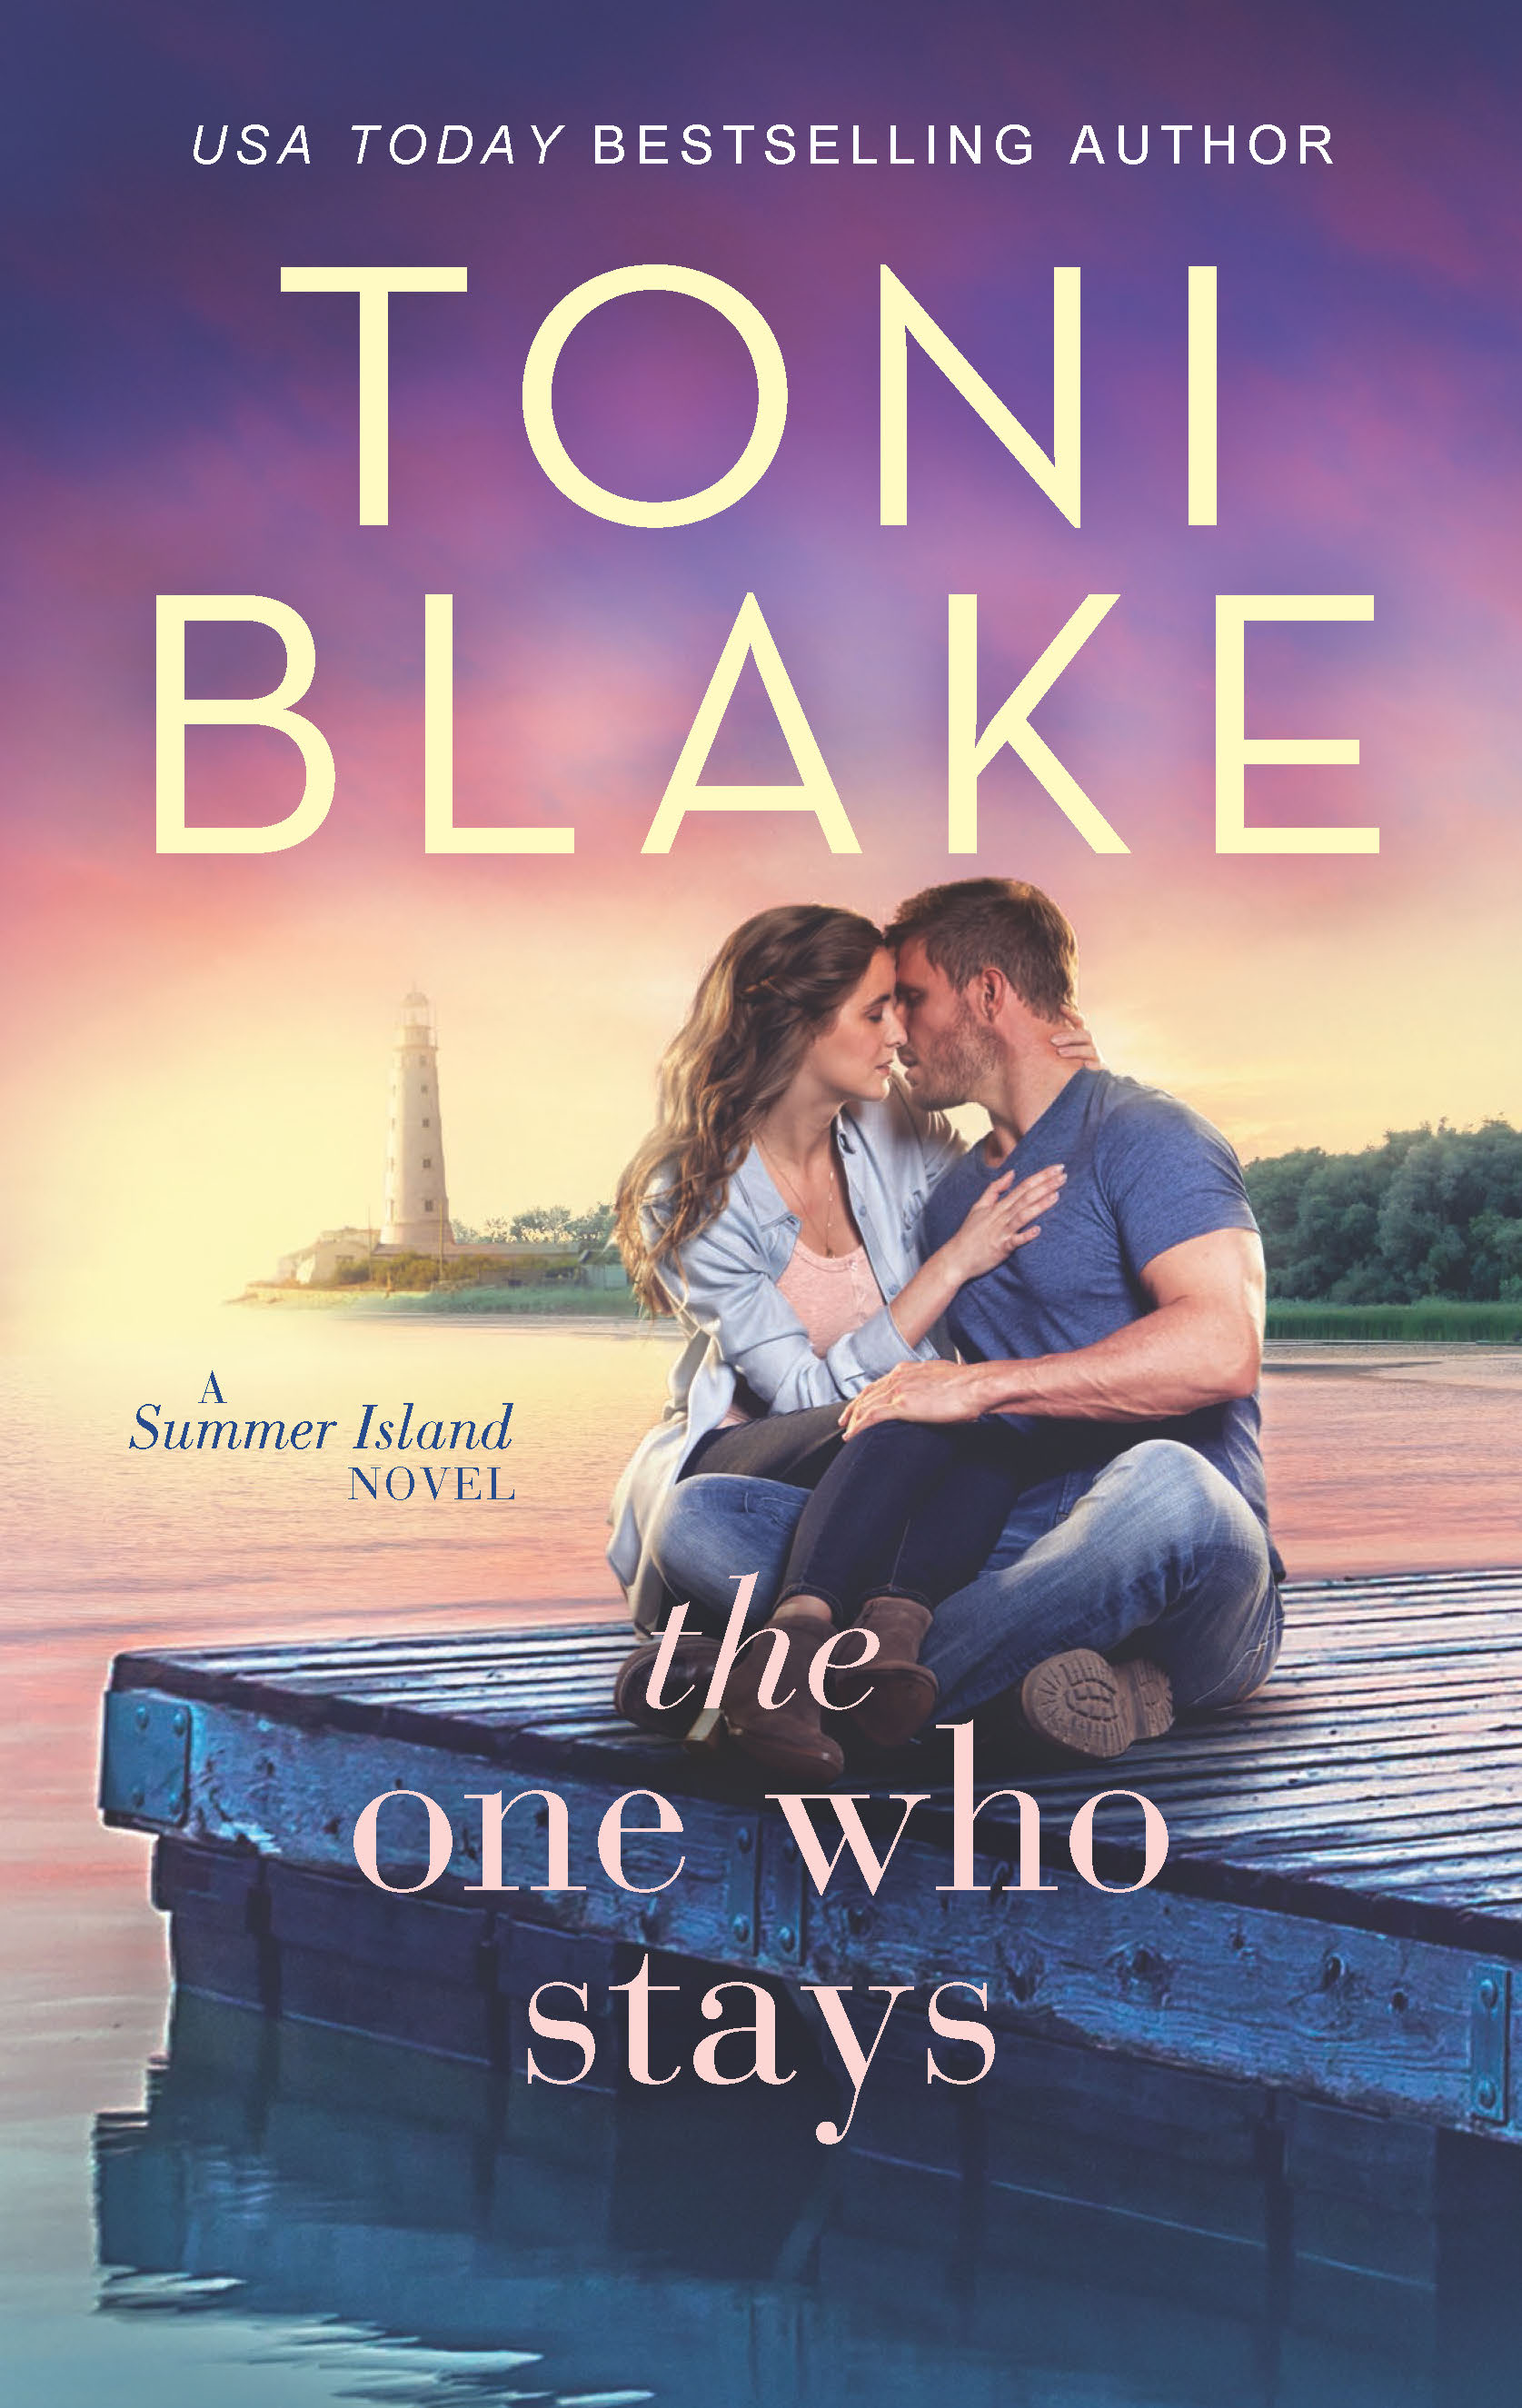 The One Who Stays A Summer Island Novel, Book 1 Available July 30, 2019